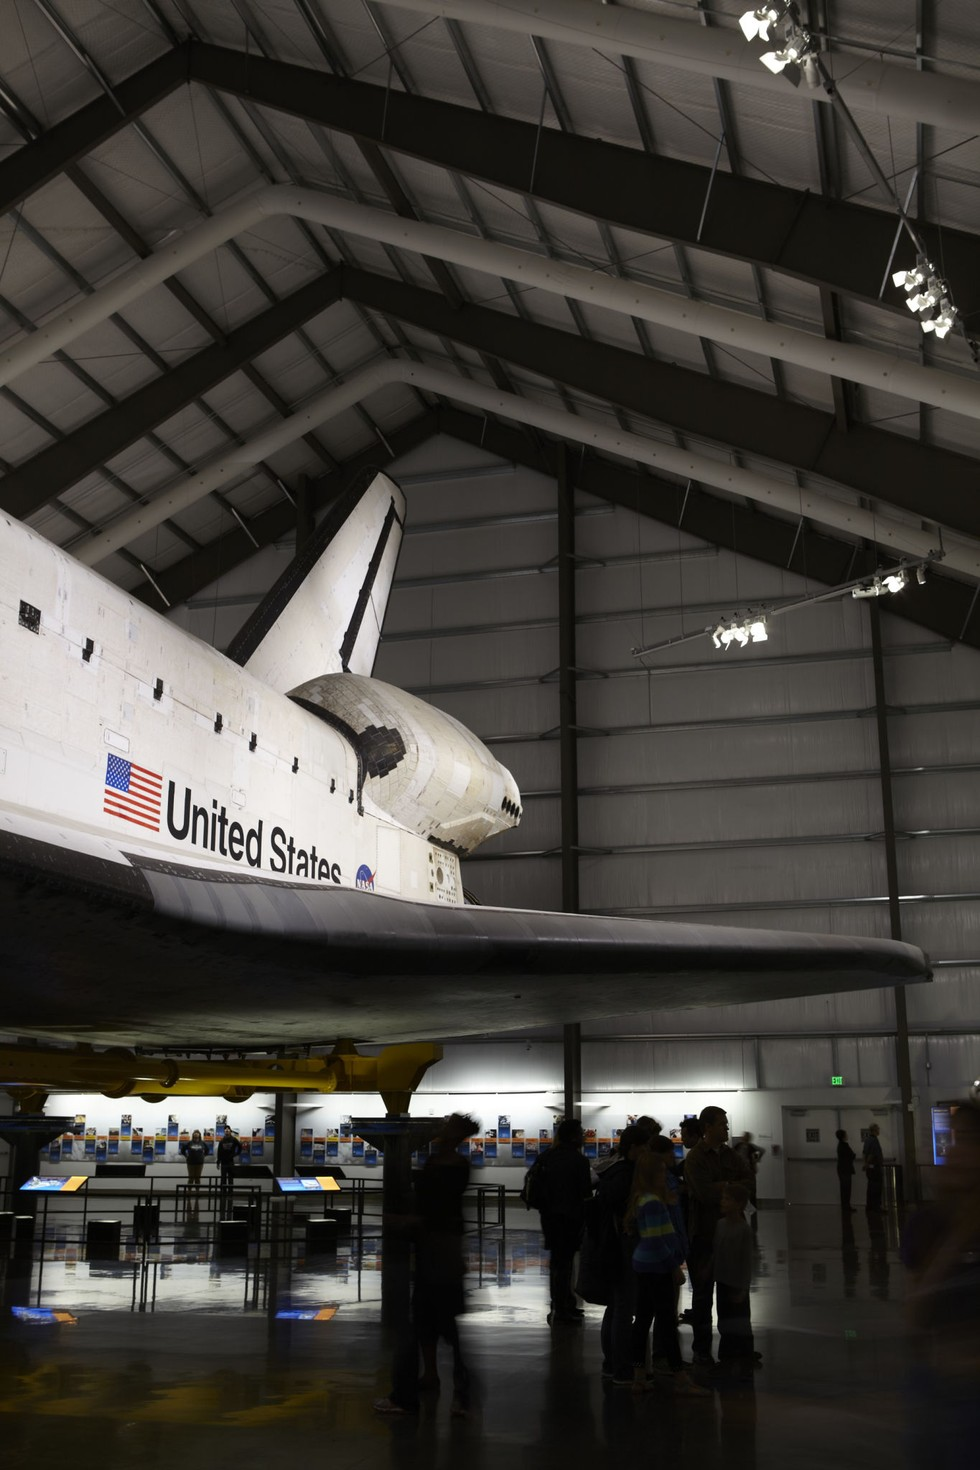 The space shuttle Endeavour at Exposition Park